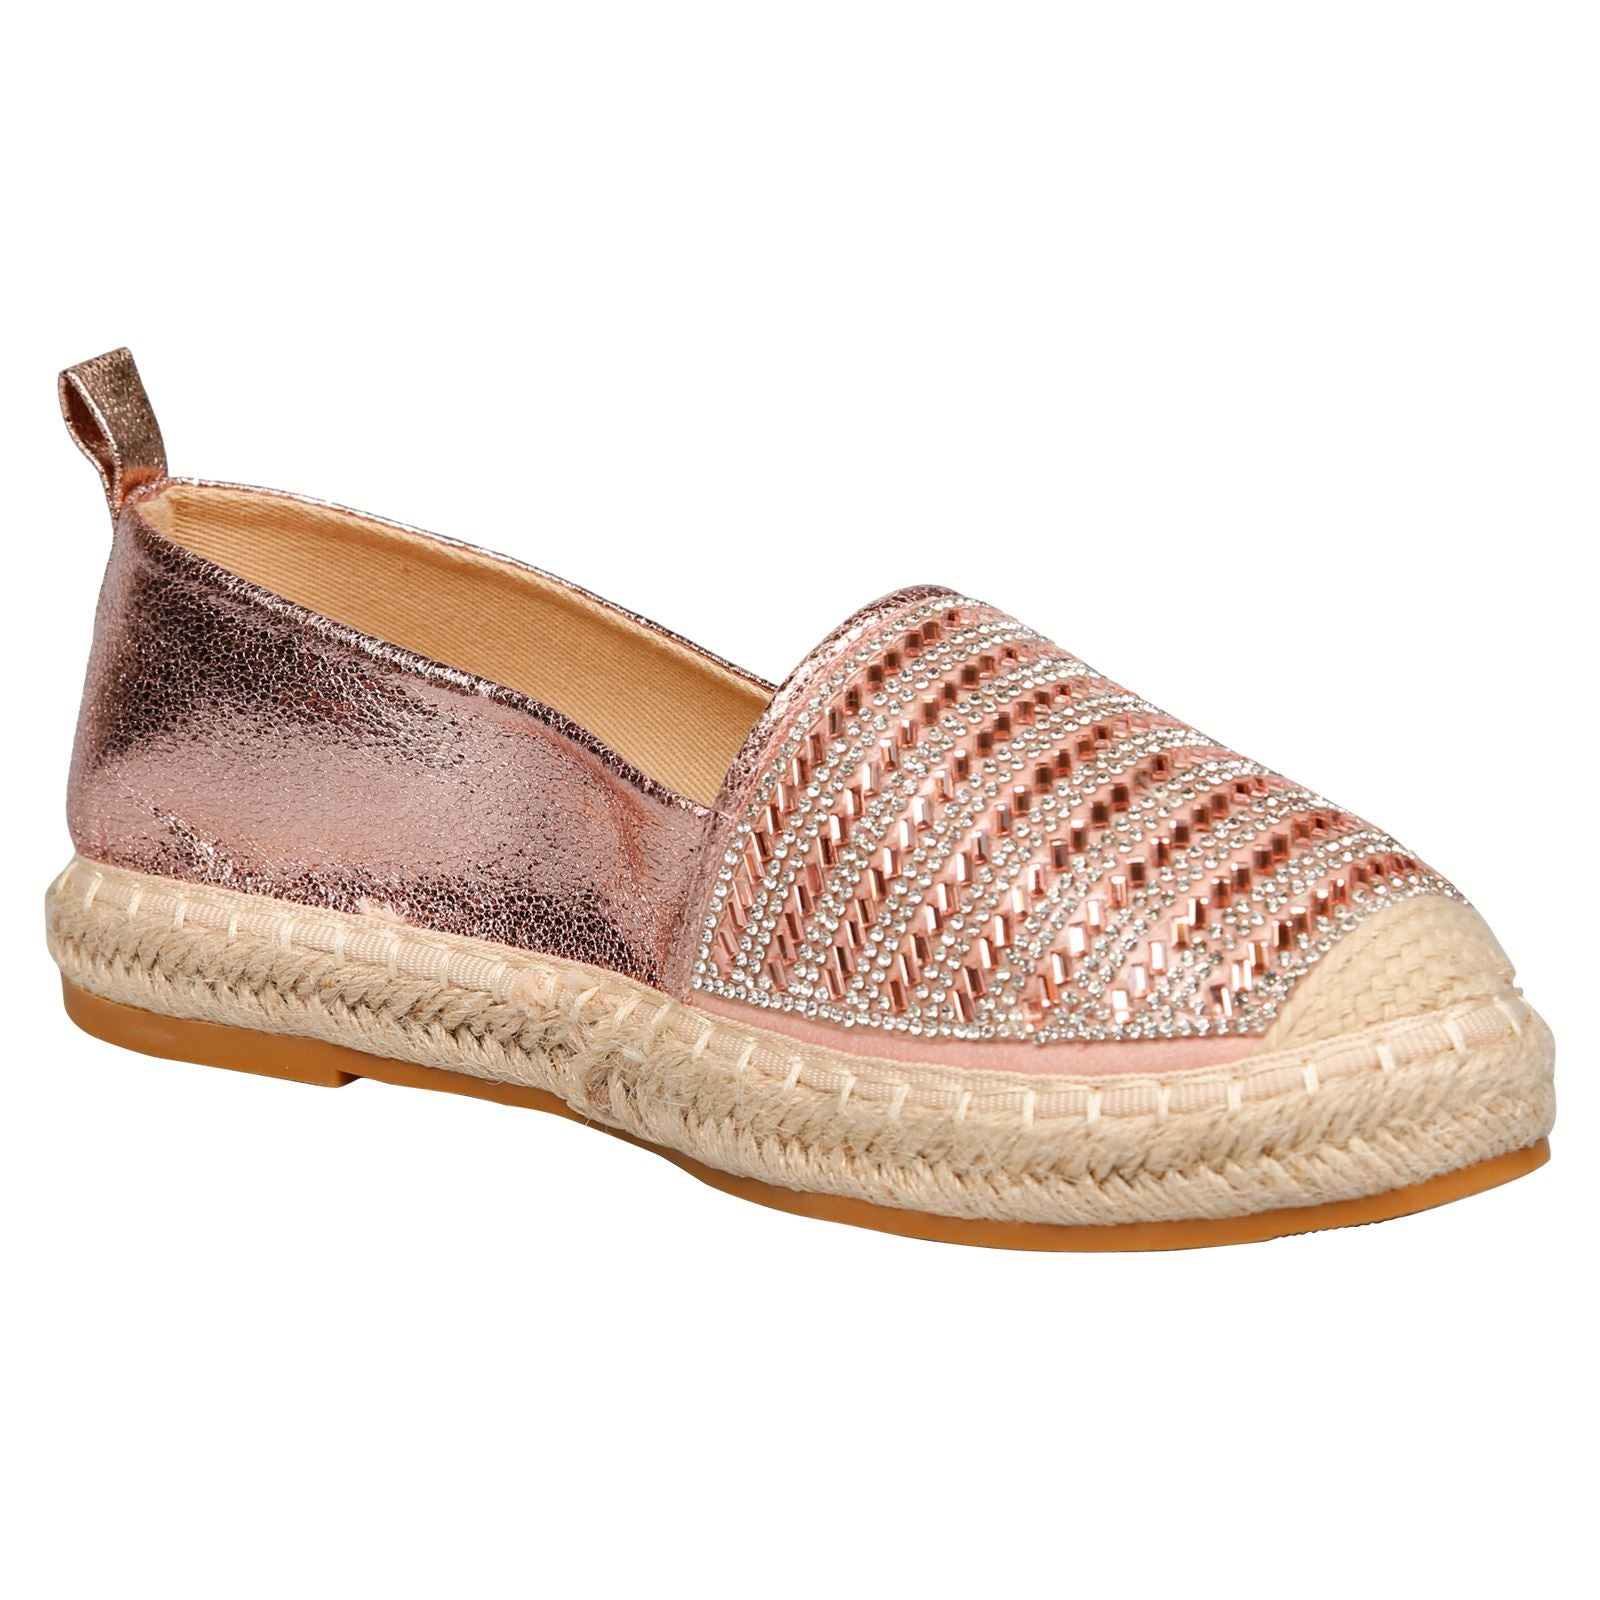 Keeva Diamante Metallic Espadrilles in Rose Gold Faux Leather